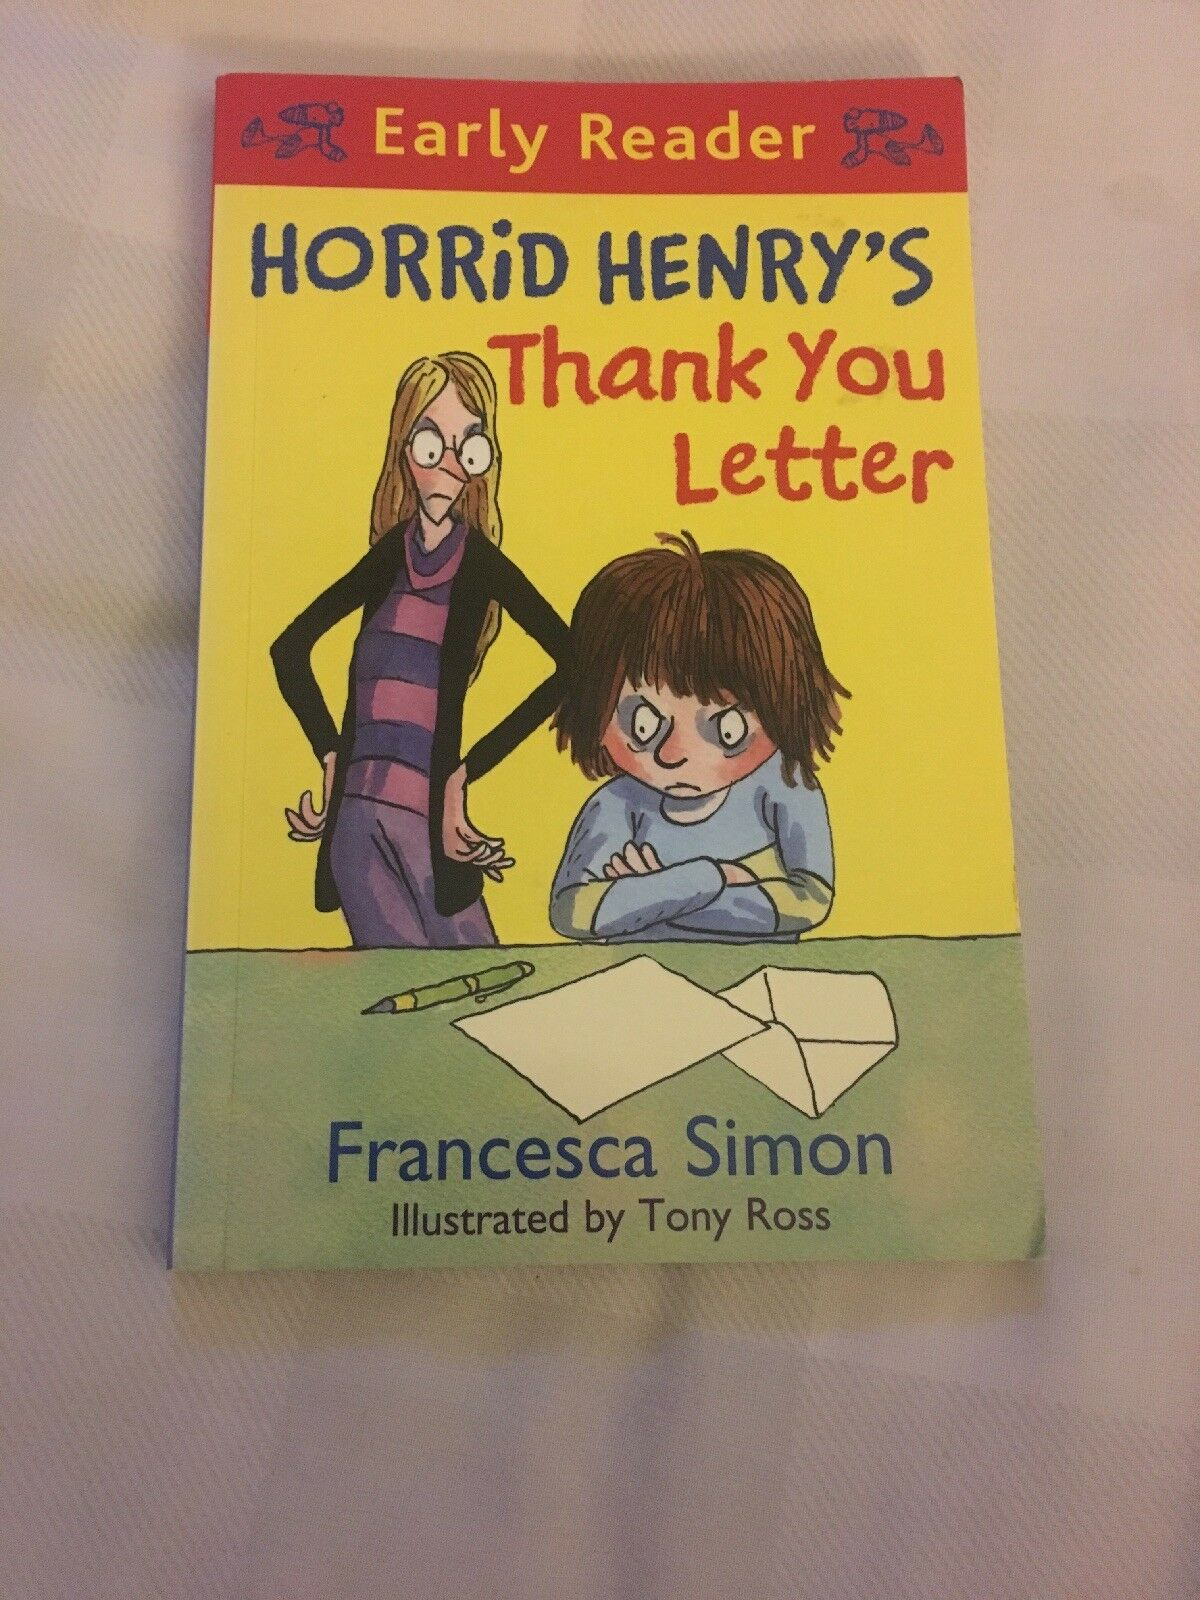 Horrid henrys thank you letter book 9 by francesca simon horrid henrys thank you letter book 9 by francesca simon paperback 2011 ebay expocarfo